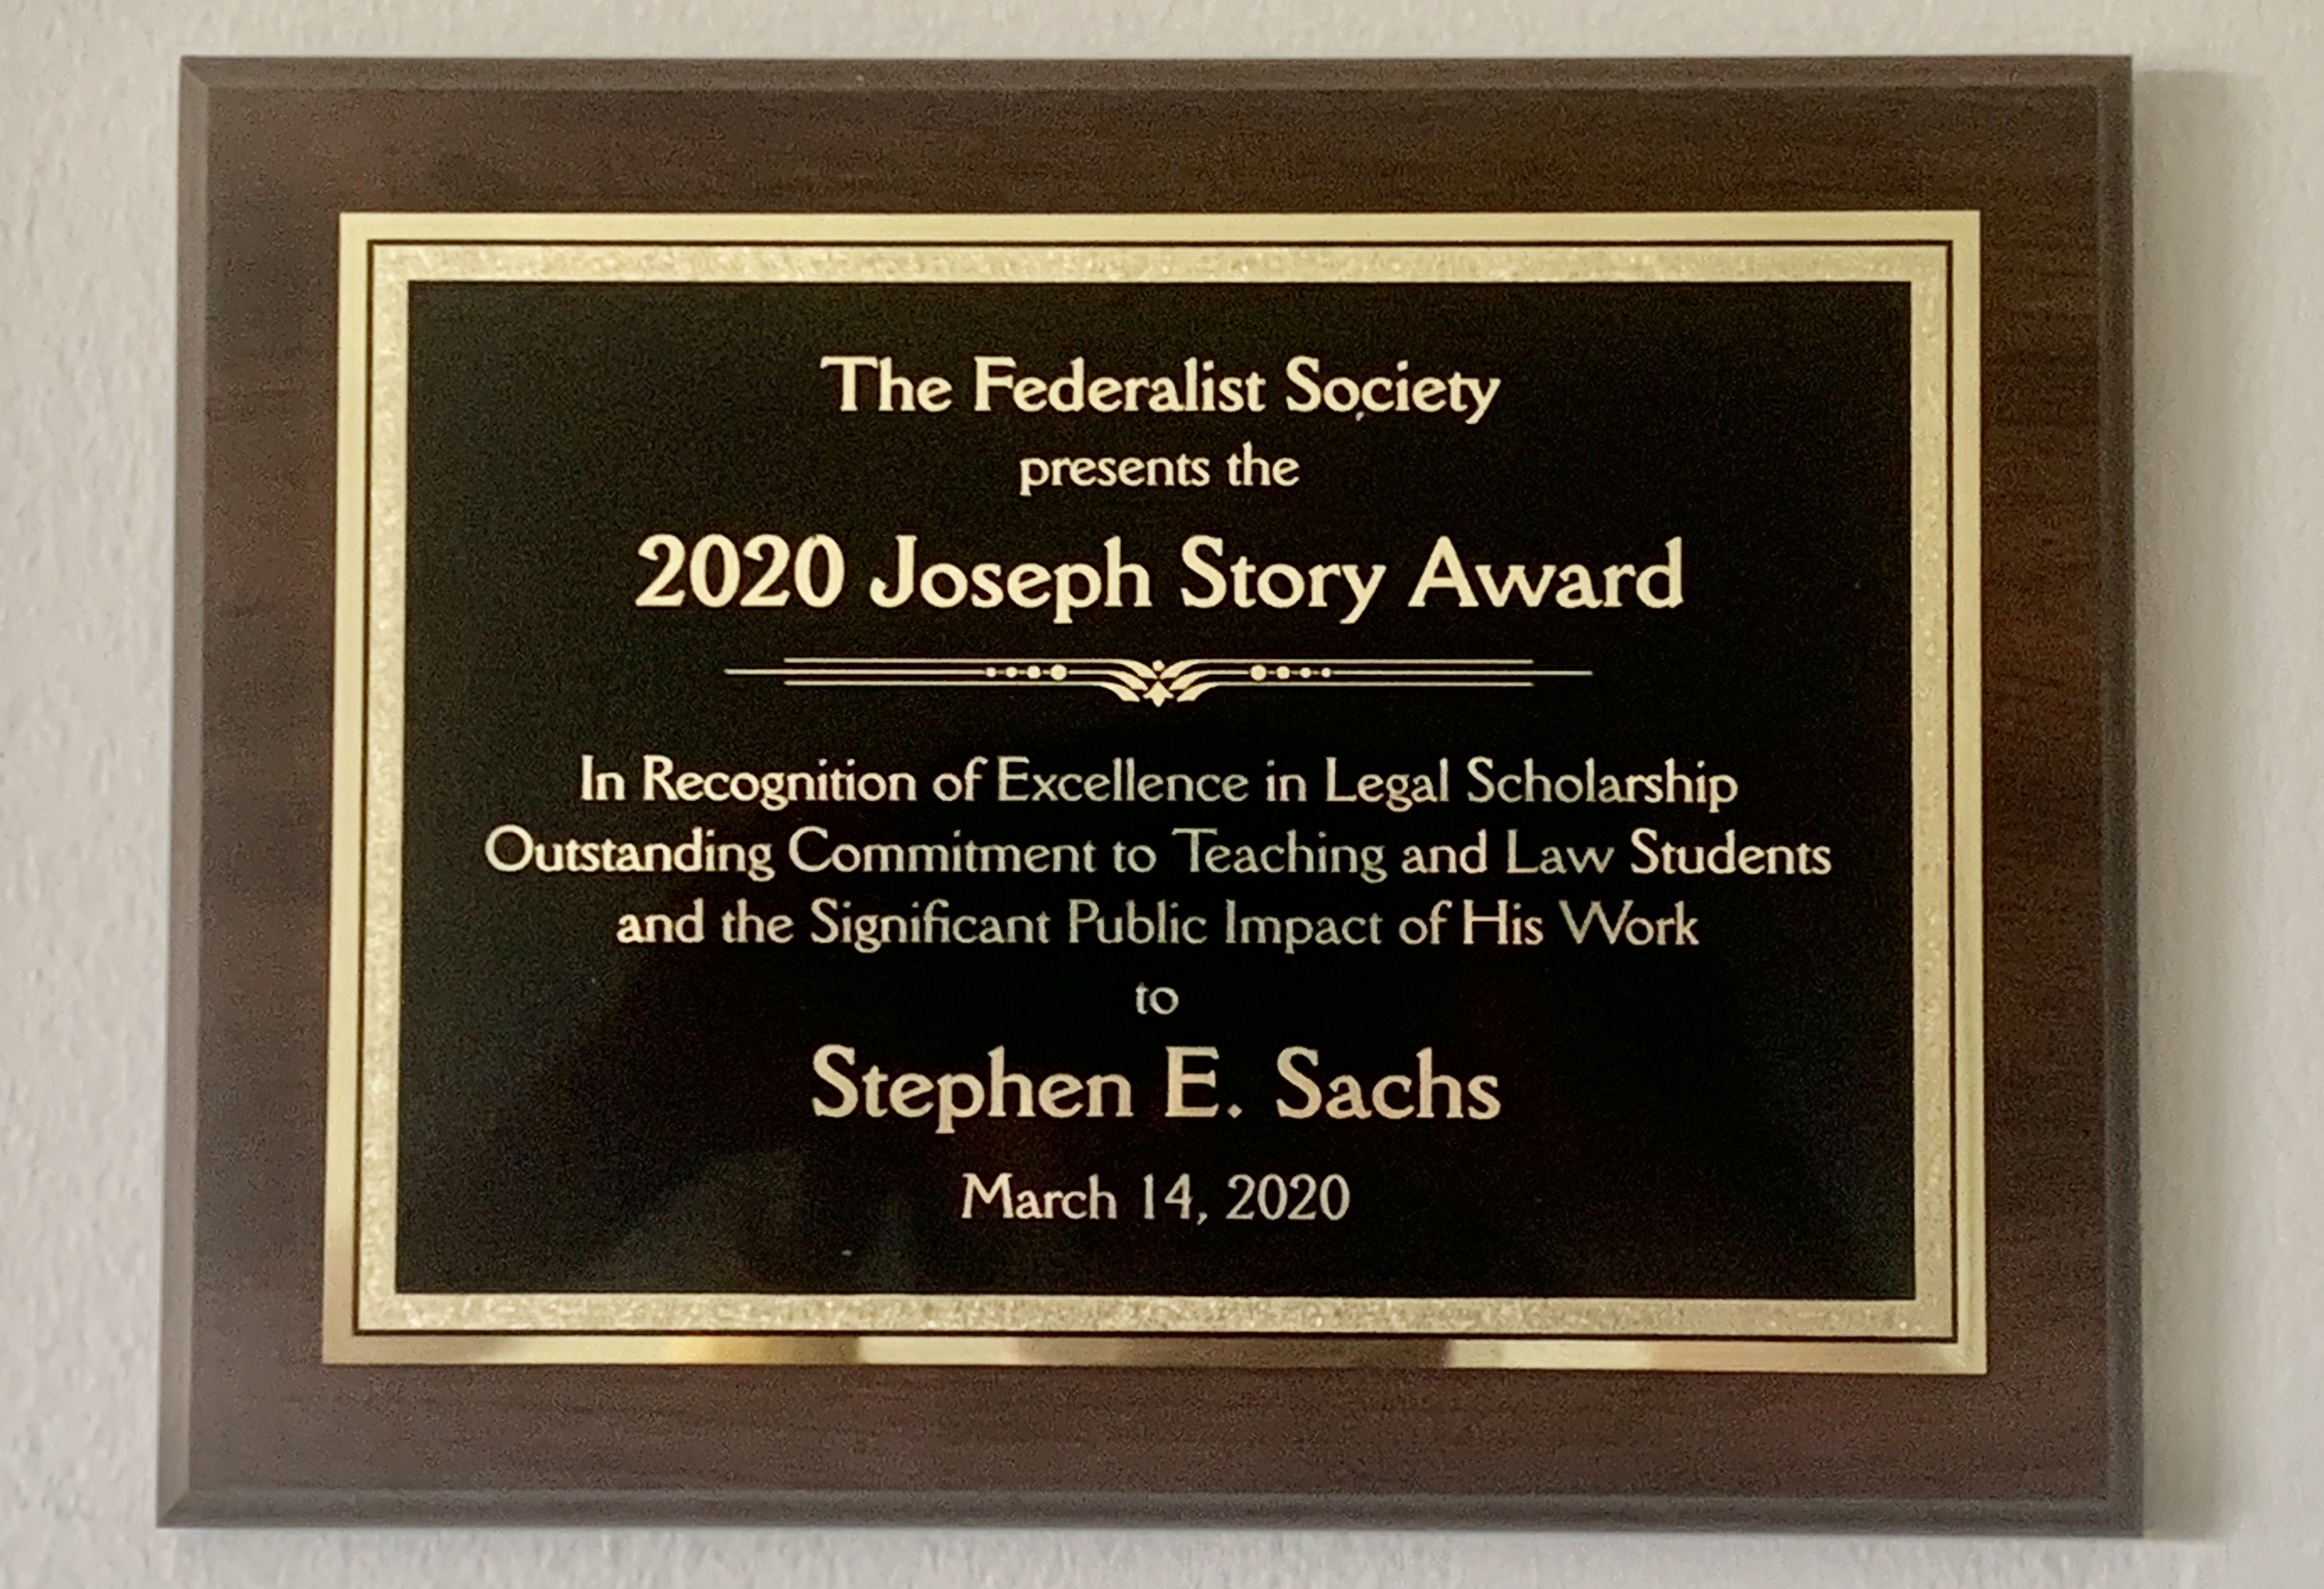 Remarks from the 2020 Joseph Story Award